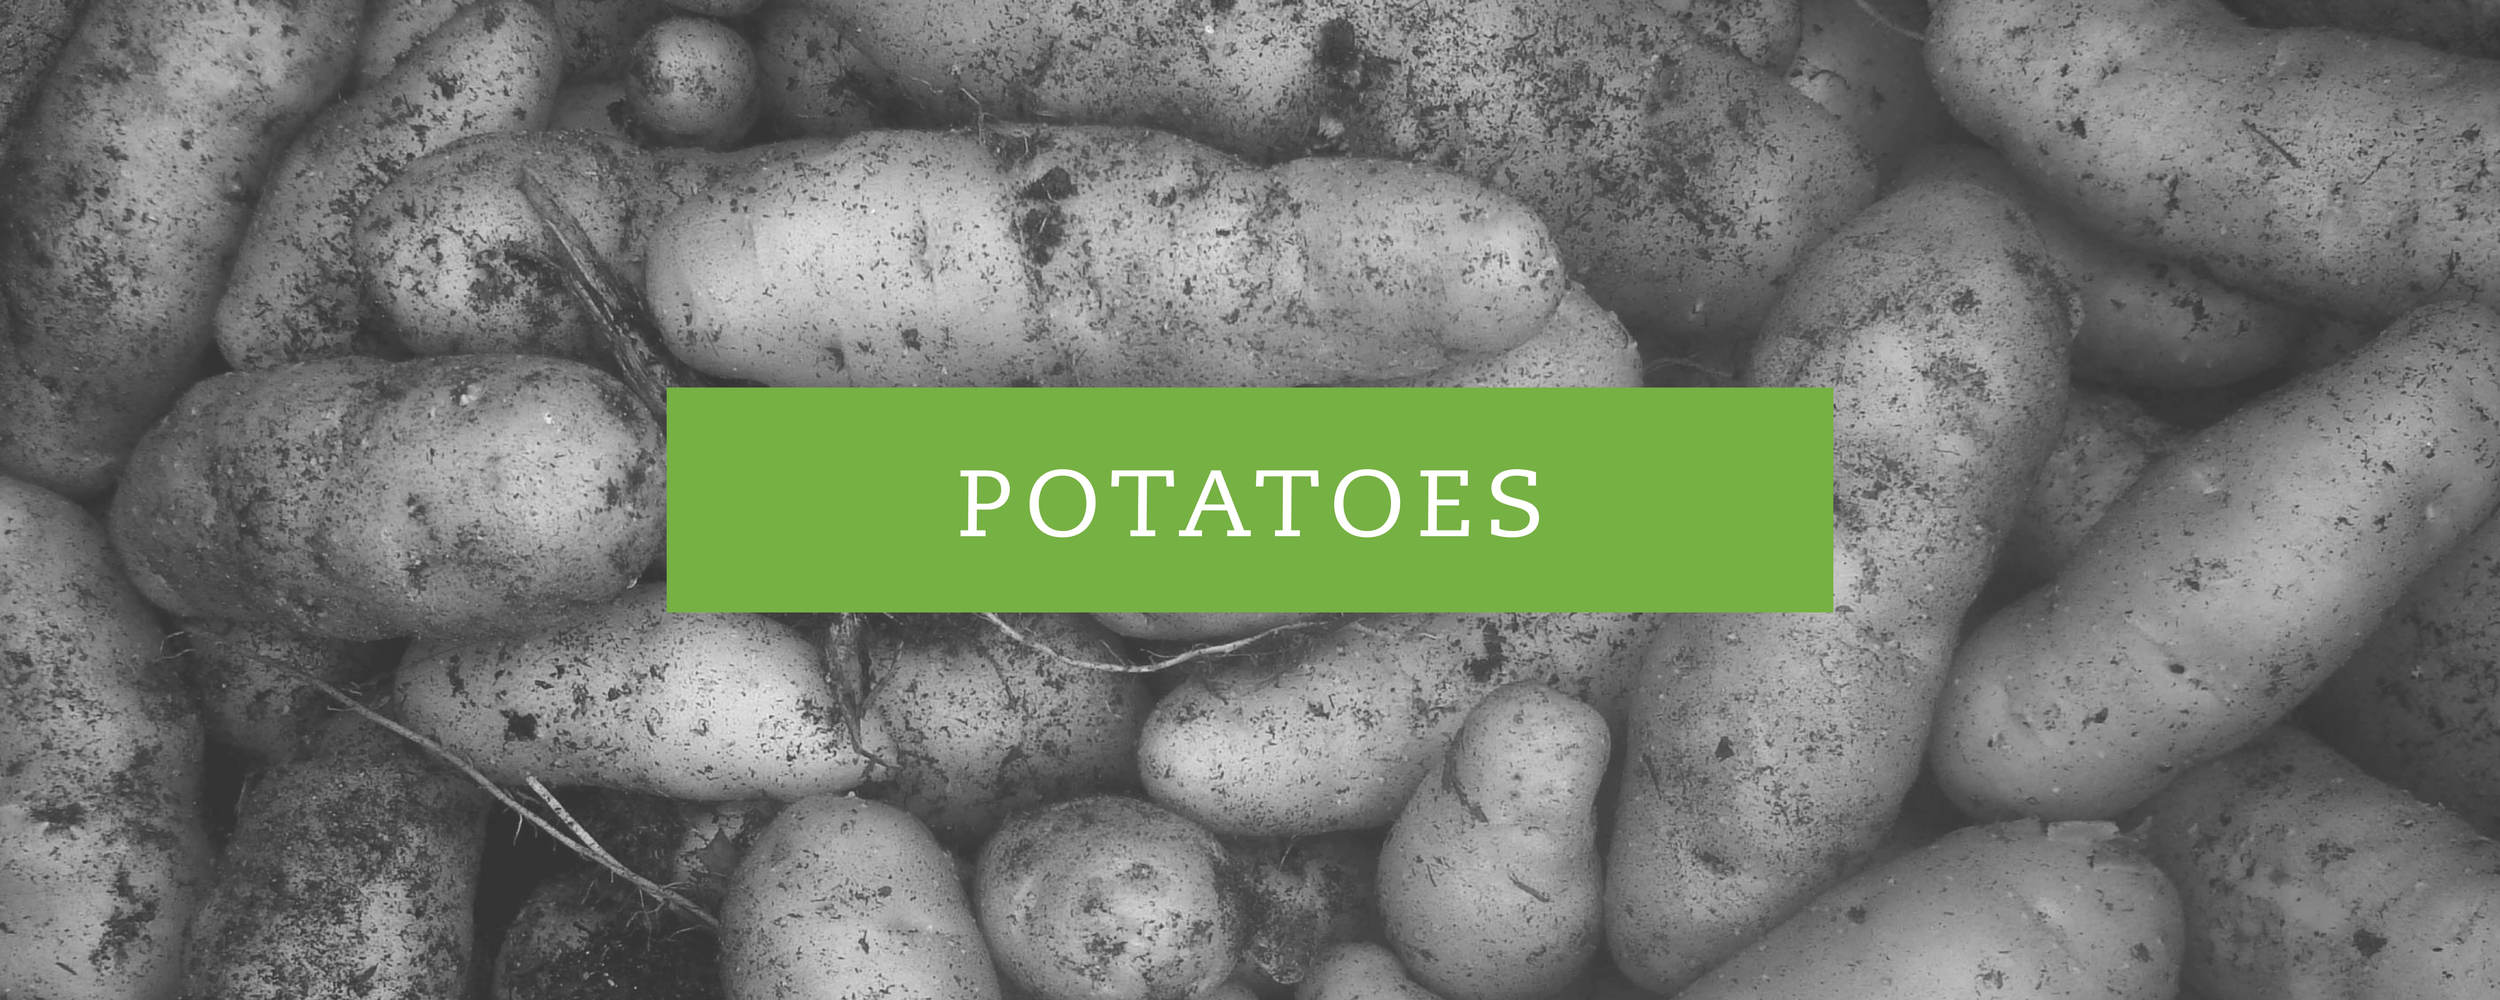 POTATOES BANNER BW.jpg